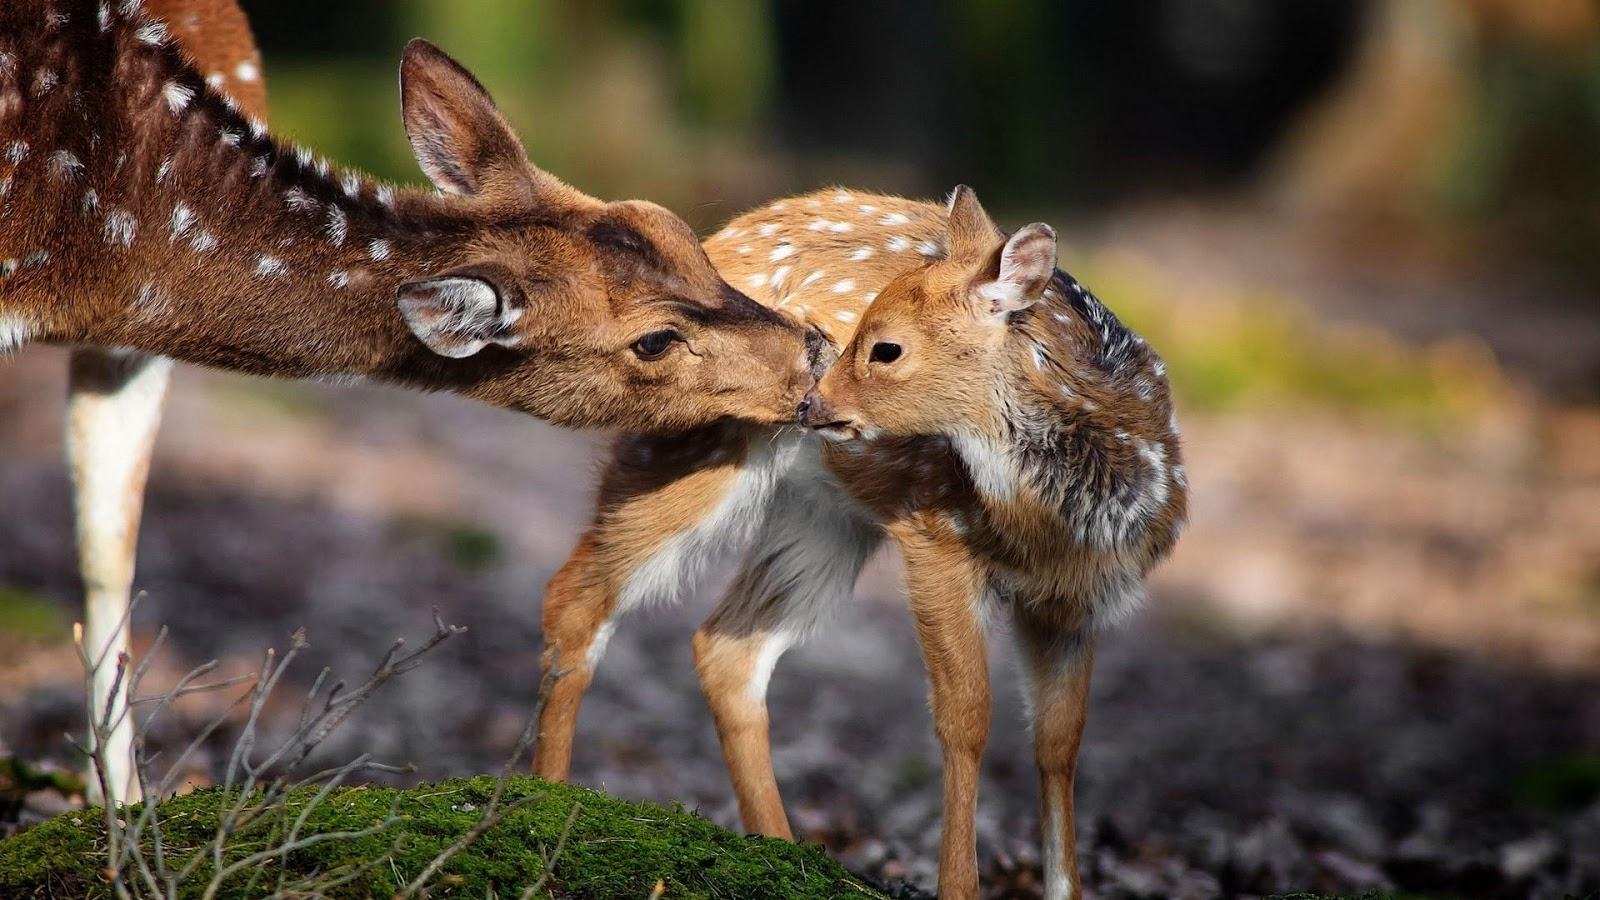 Deer animal wallpapers android apps on google play - Hunting wallpaper for android ...